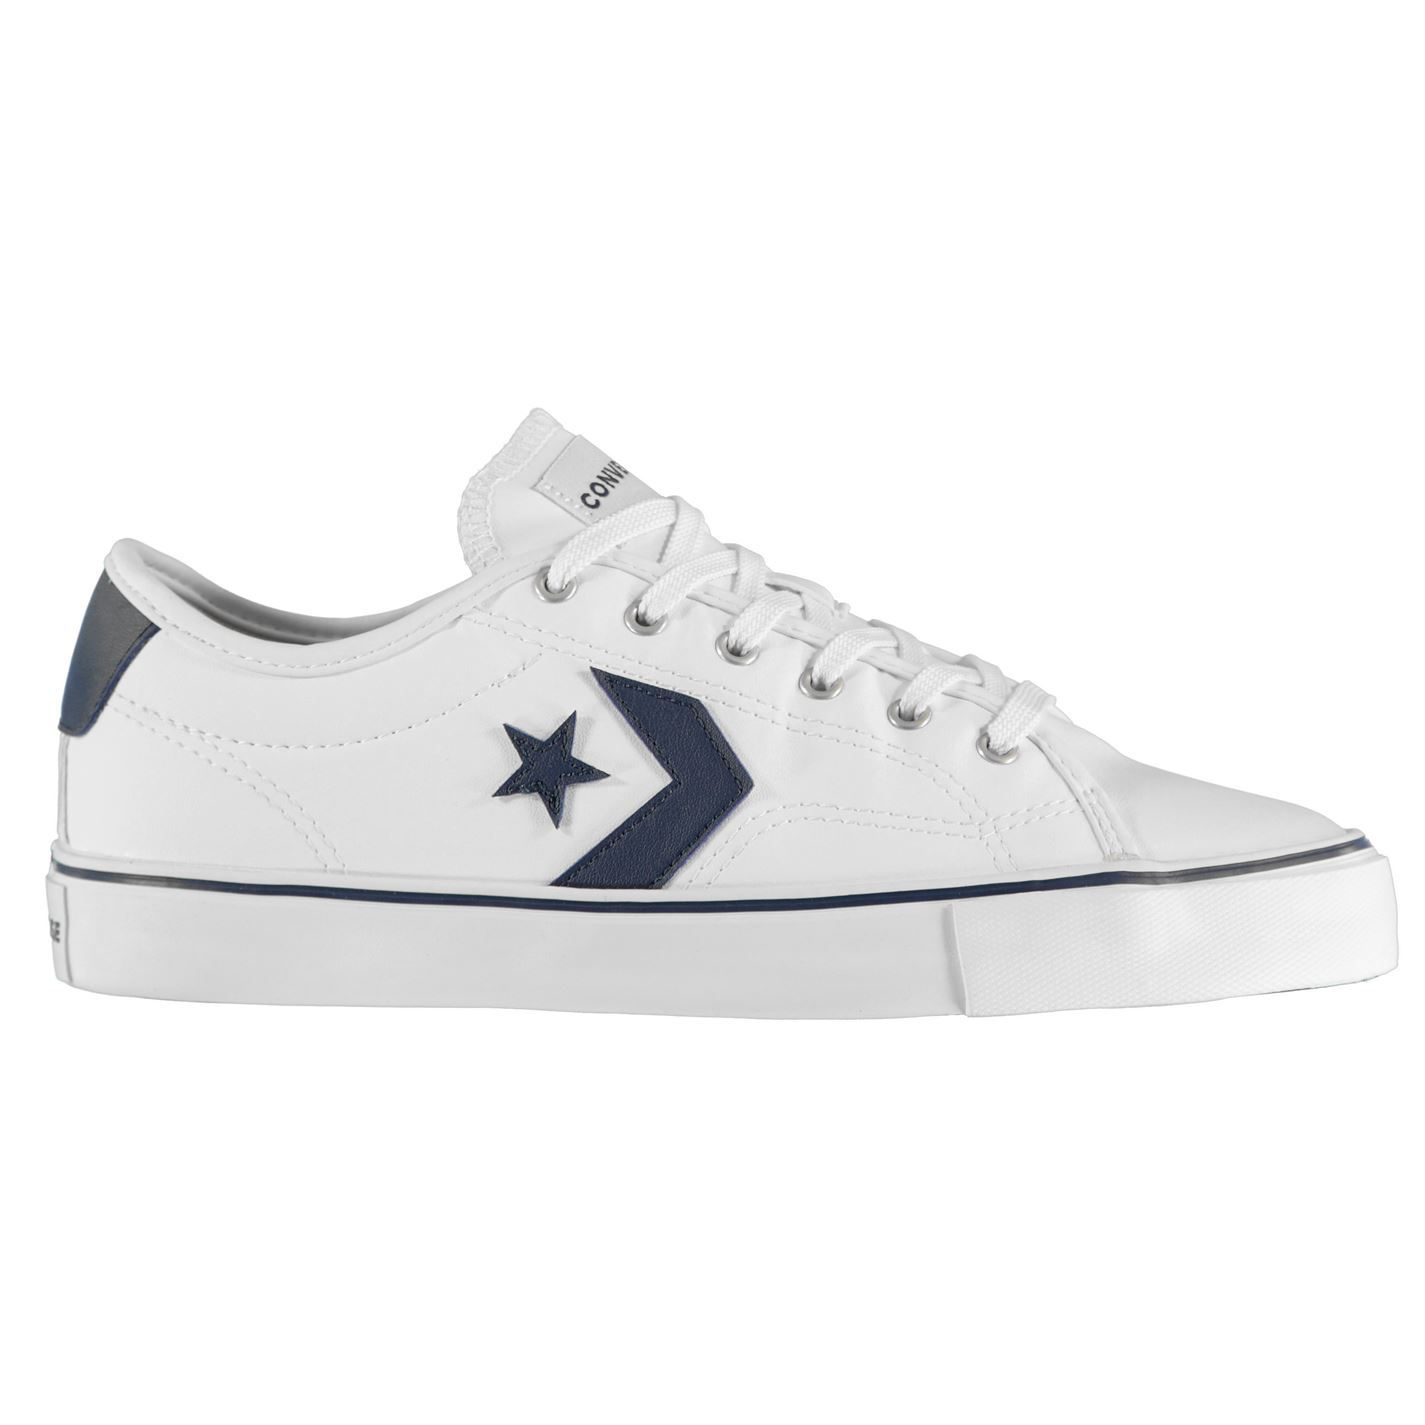 Converse-Ox-Replay-Low-Baskets-Pour-Homme-Chaussures-De-Loisirs-Chaussures-Baskets miniature 15